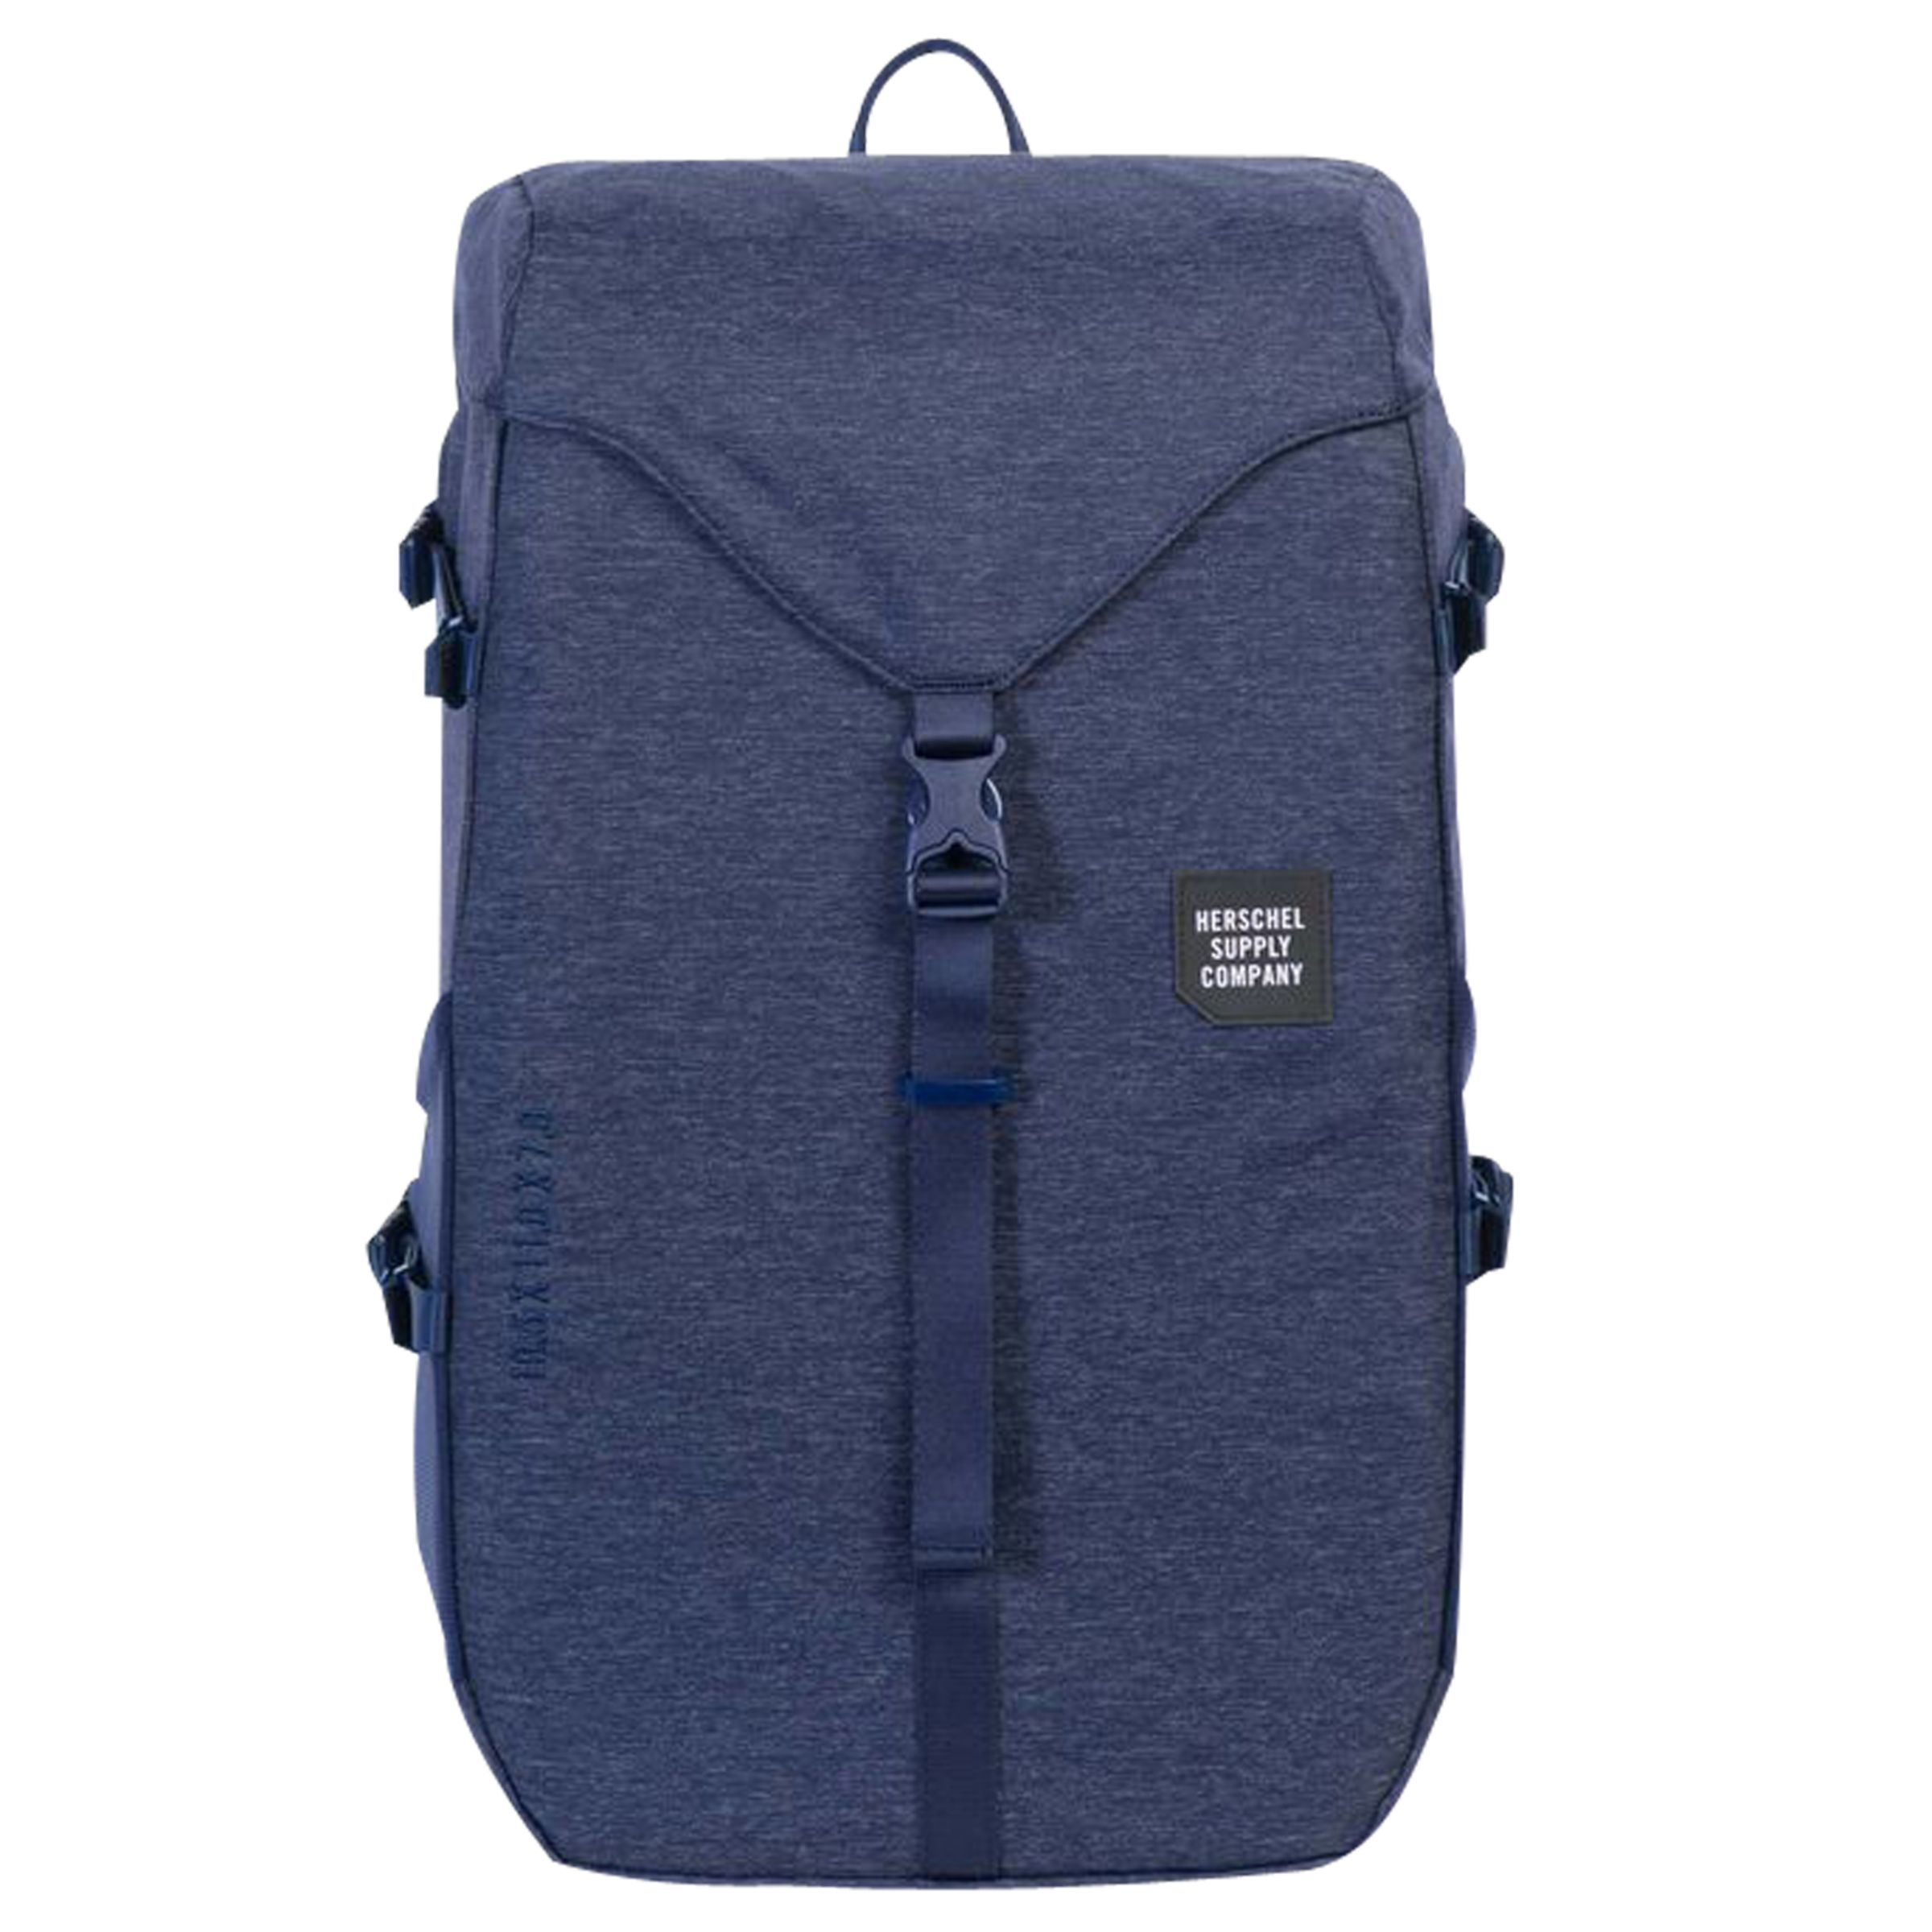 b10457ab1df7 Herschel Suppy Co. Barlow Large Backpack